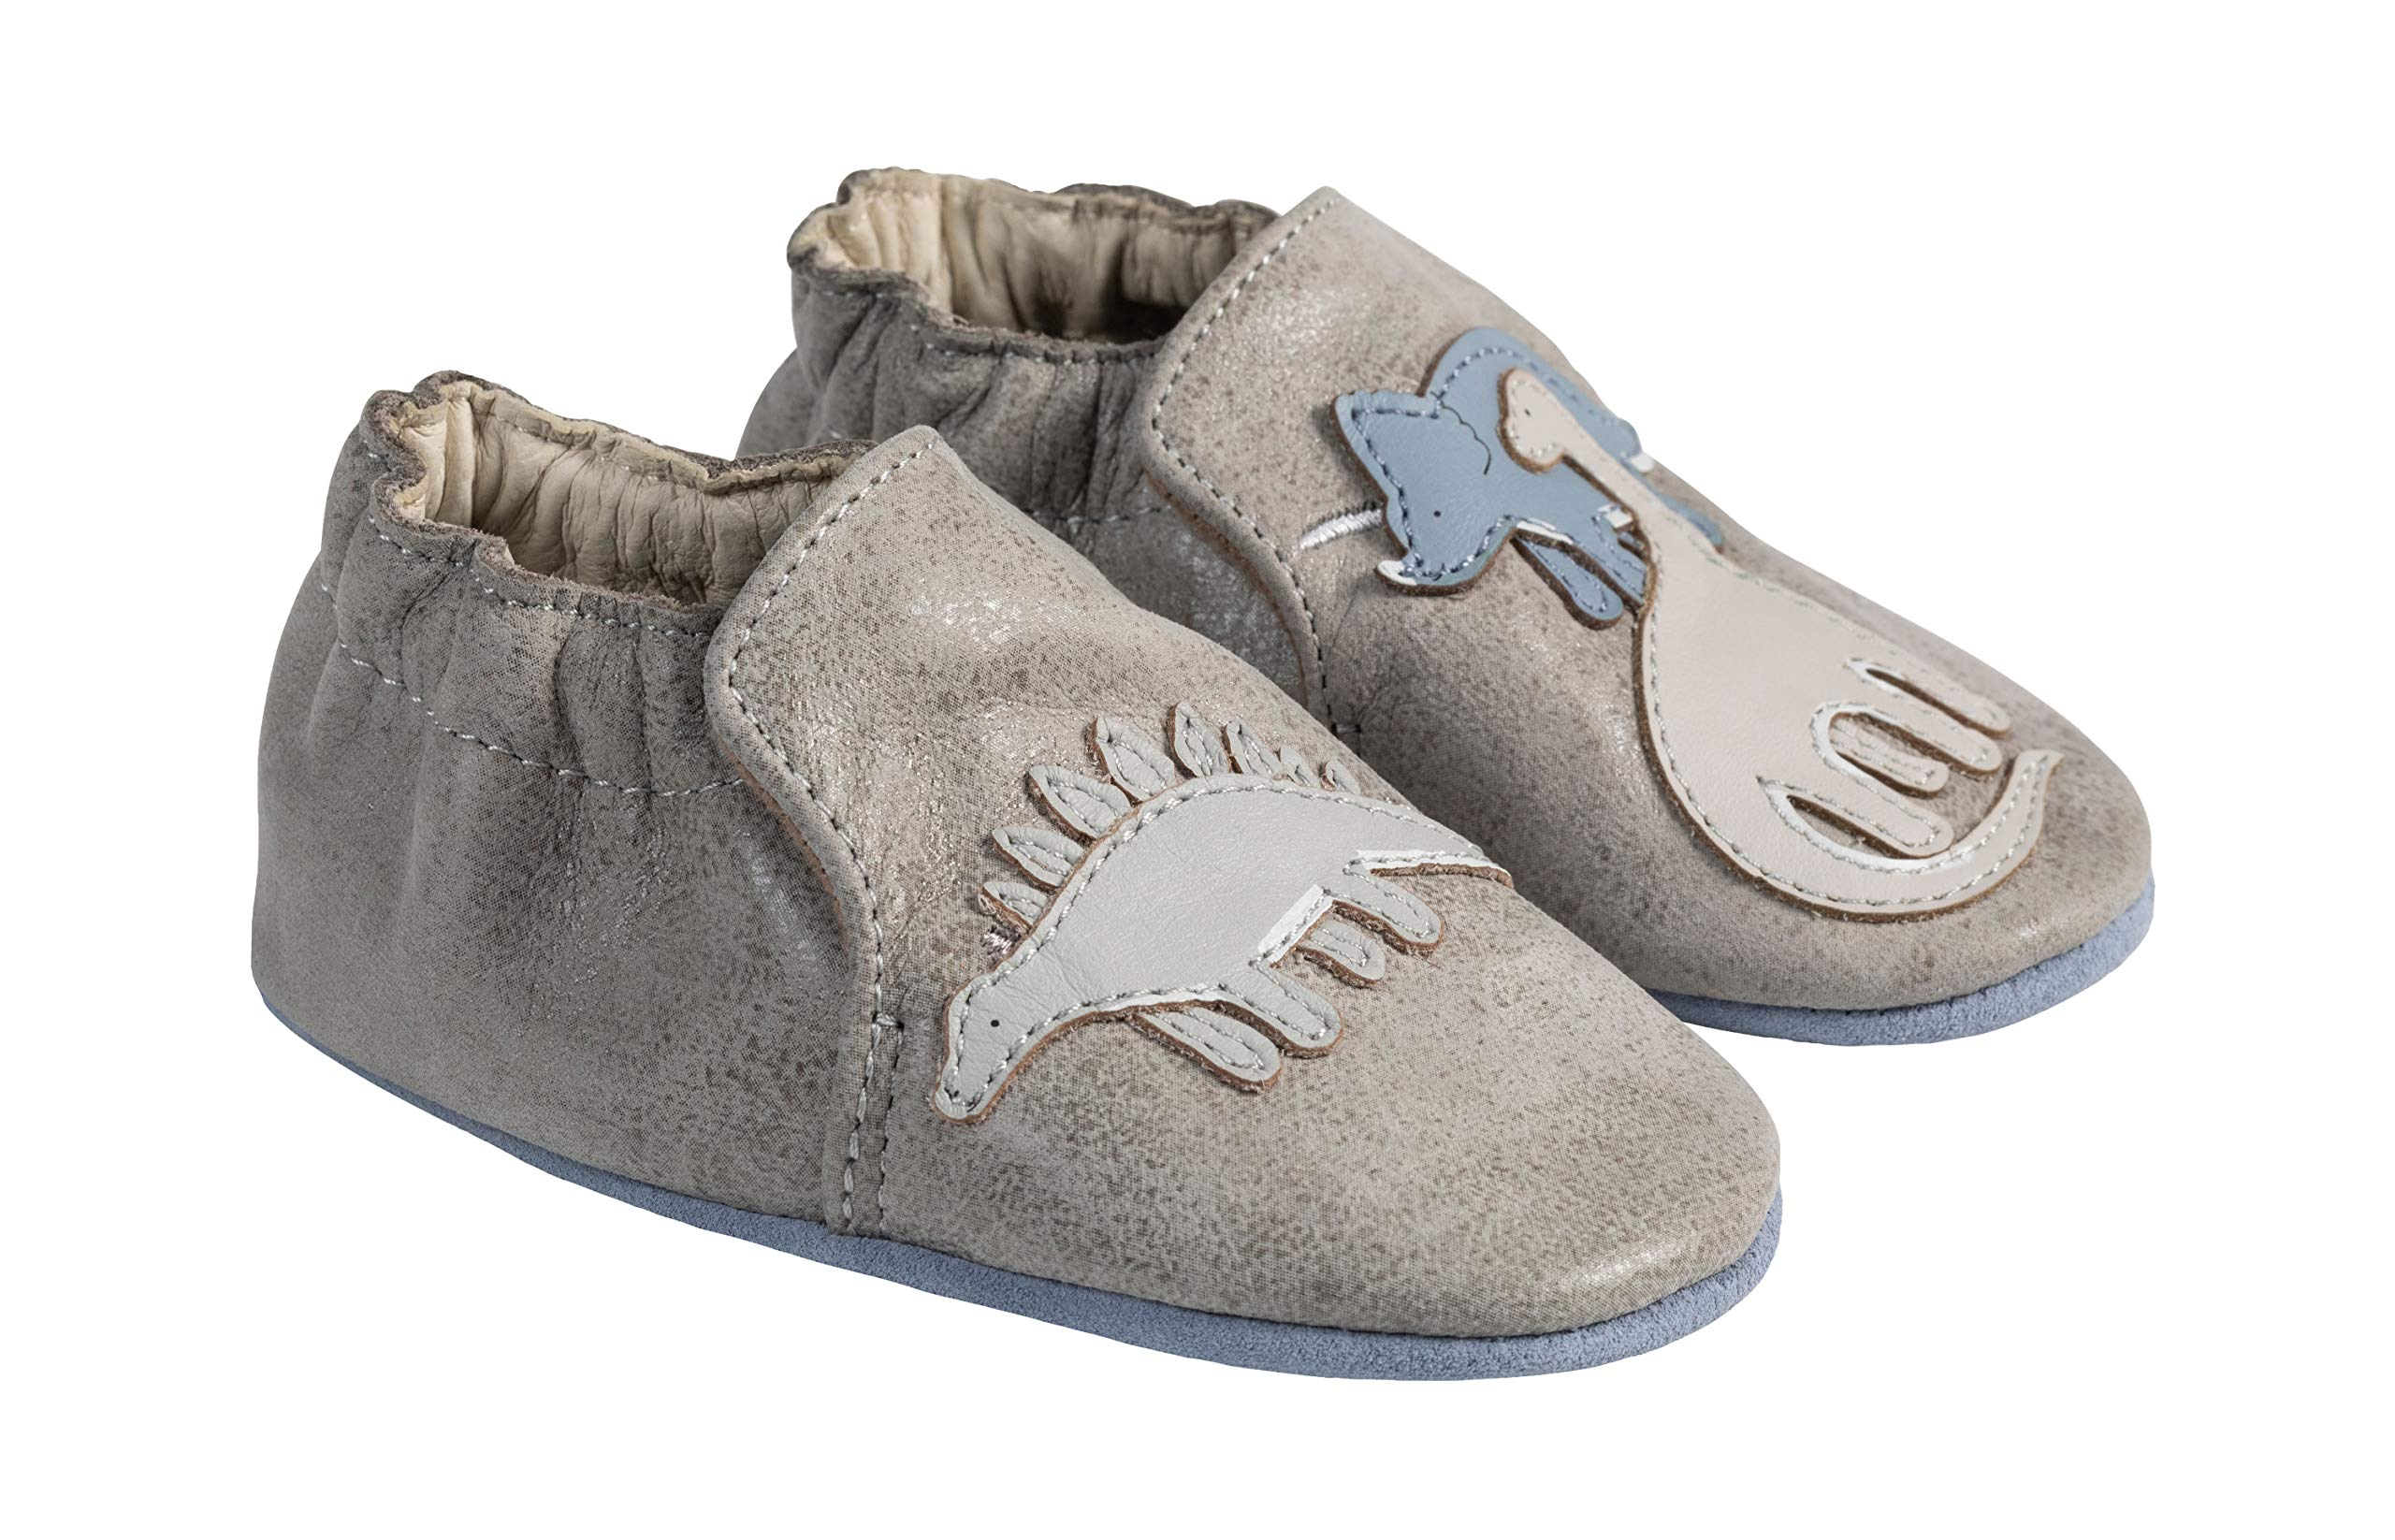 Robeez Ramsey Soft Sole Baby Shoe 0-6mo Grey by Robeez